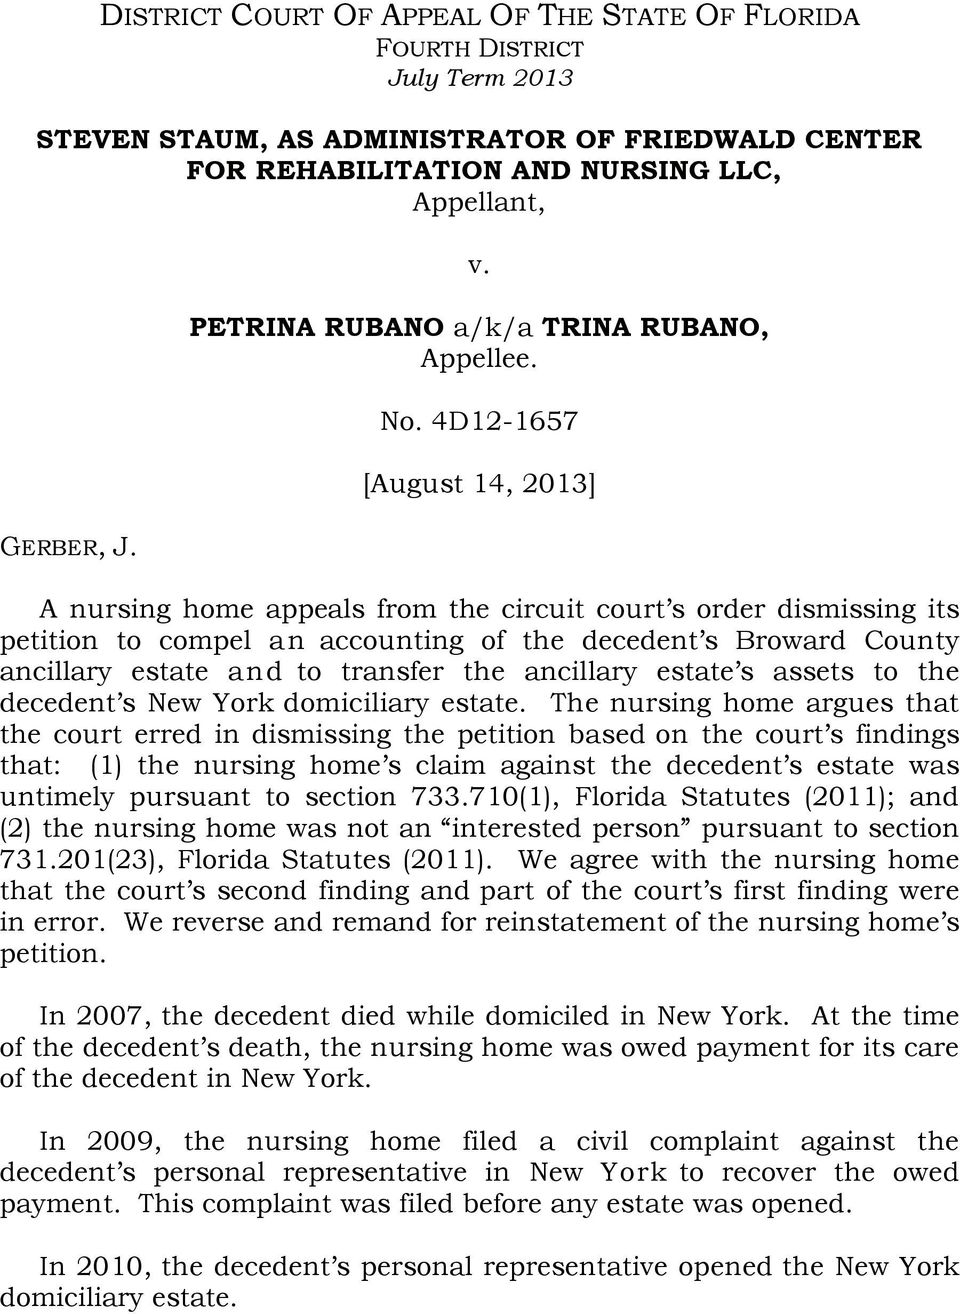 4D12-1657 [August 14, 2013] A nursing home appeals from the circuit court s order dismissing its petition to compel an accounting of the decedent s Broward County ancillary estate and to transfer the